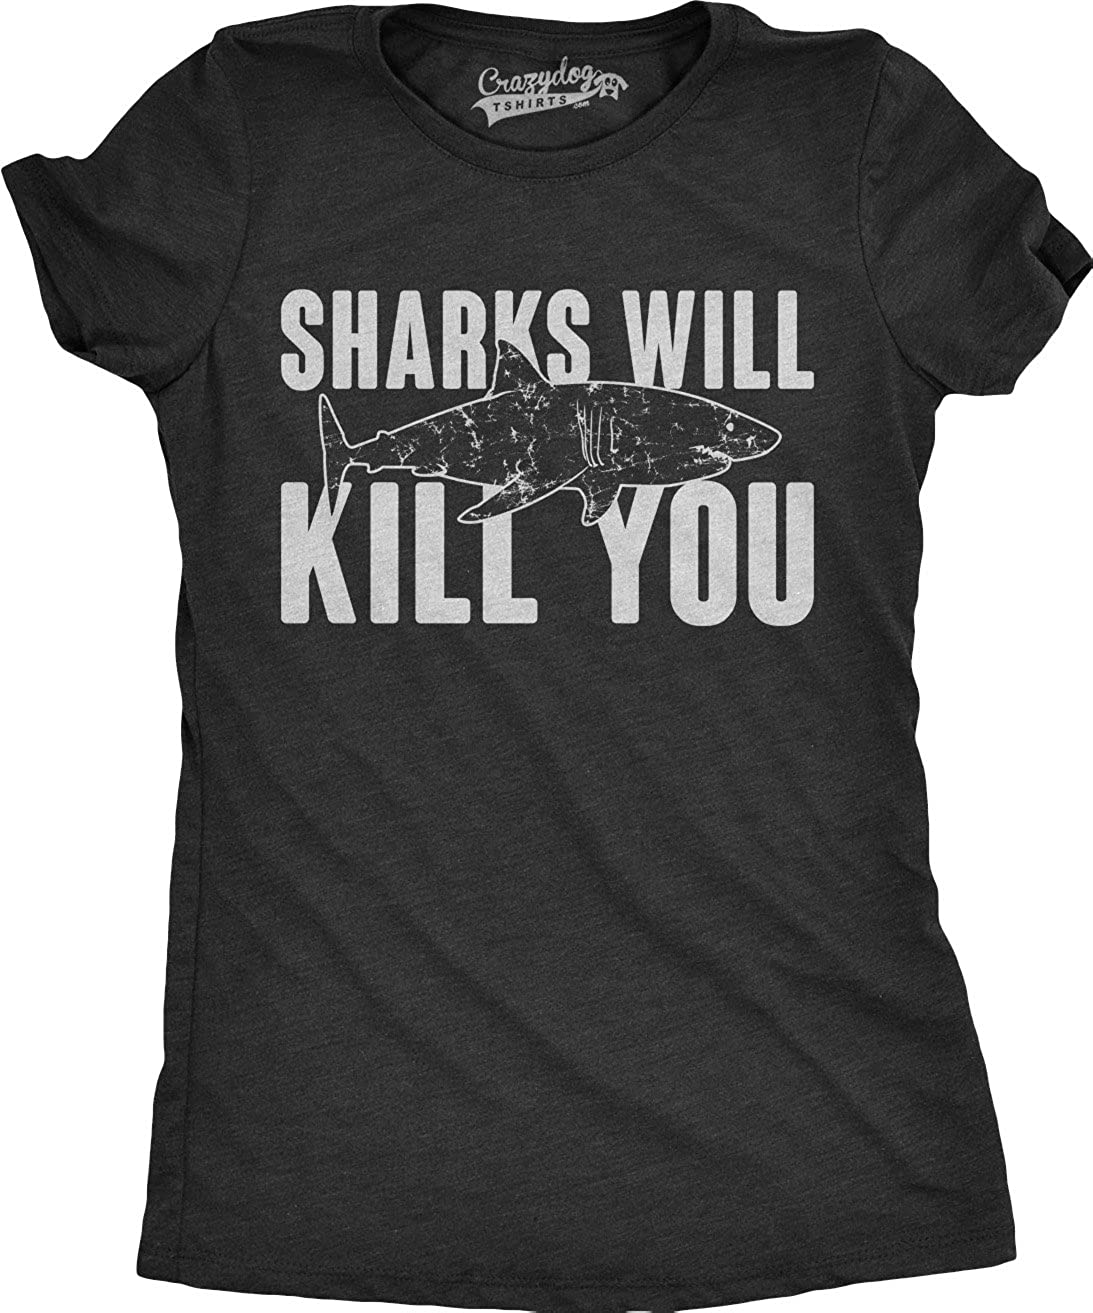 3bcc078f1b Amazon.com: Womens Sharks Will Kill You Funny Shark T Shirt Sarcasm Novelty  Offensive Shirts: Clothing